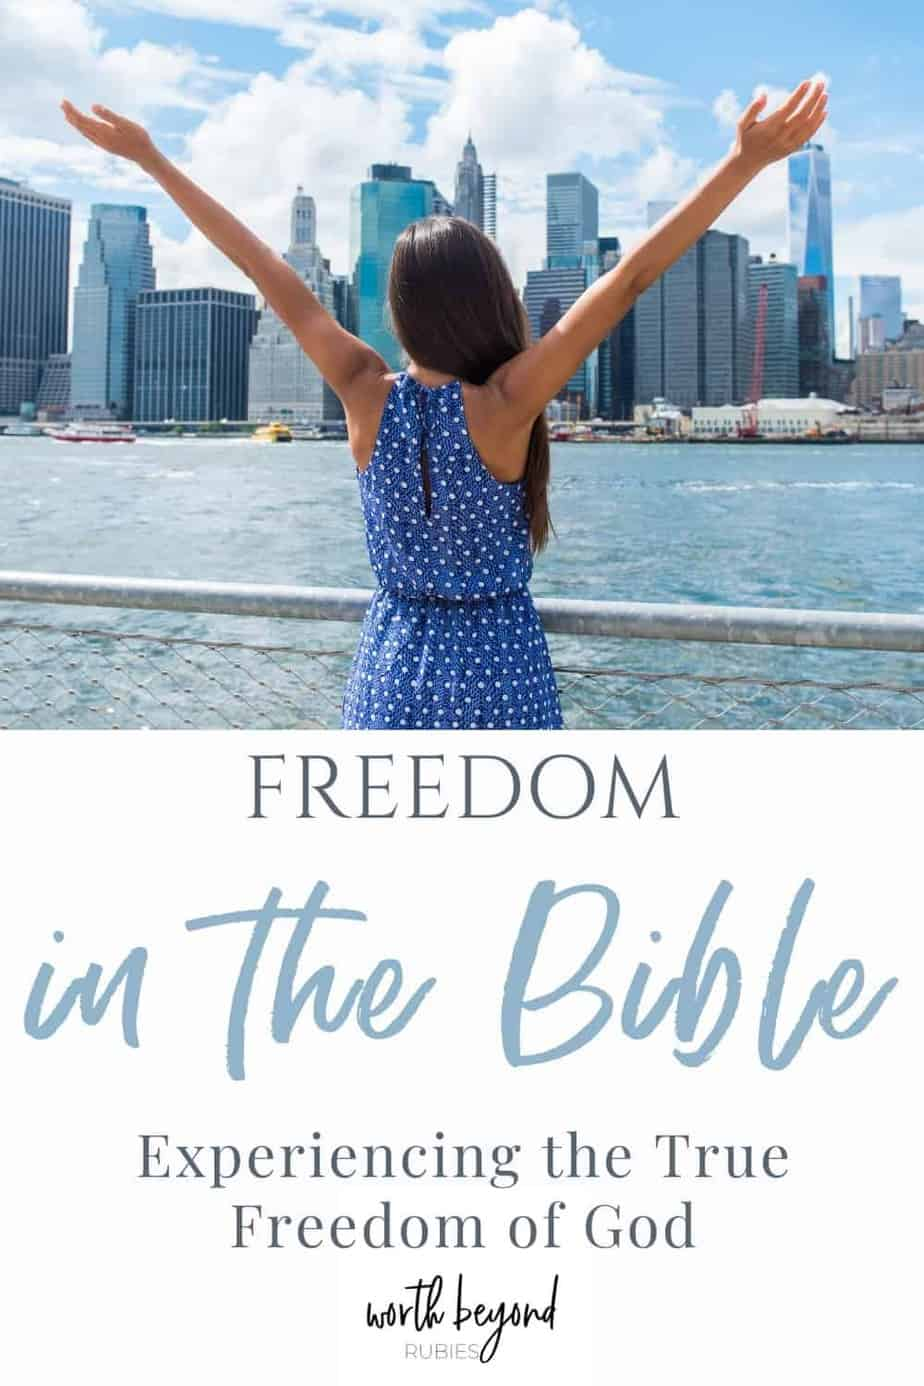 An image of a woman standing on the river facing the New York City skyline and she is wearing a blue, polka dot dress and her arms are up in the air toward the sky - a text overlay that says Freedom in the Bible - Experiencing the True Freedom of God